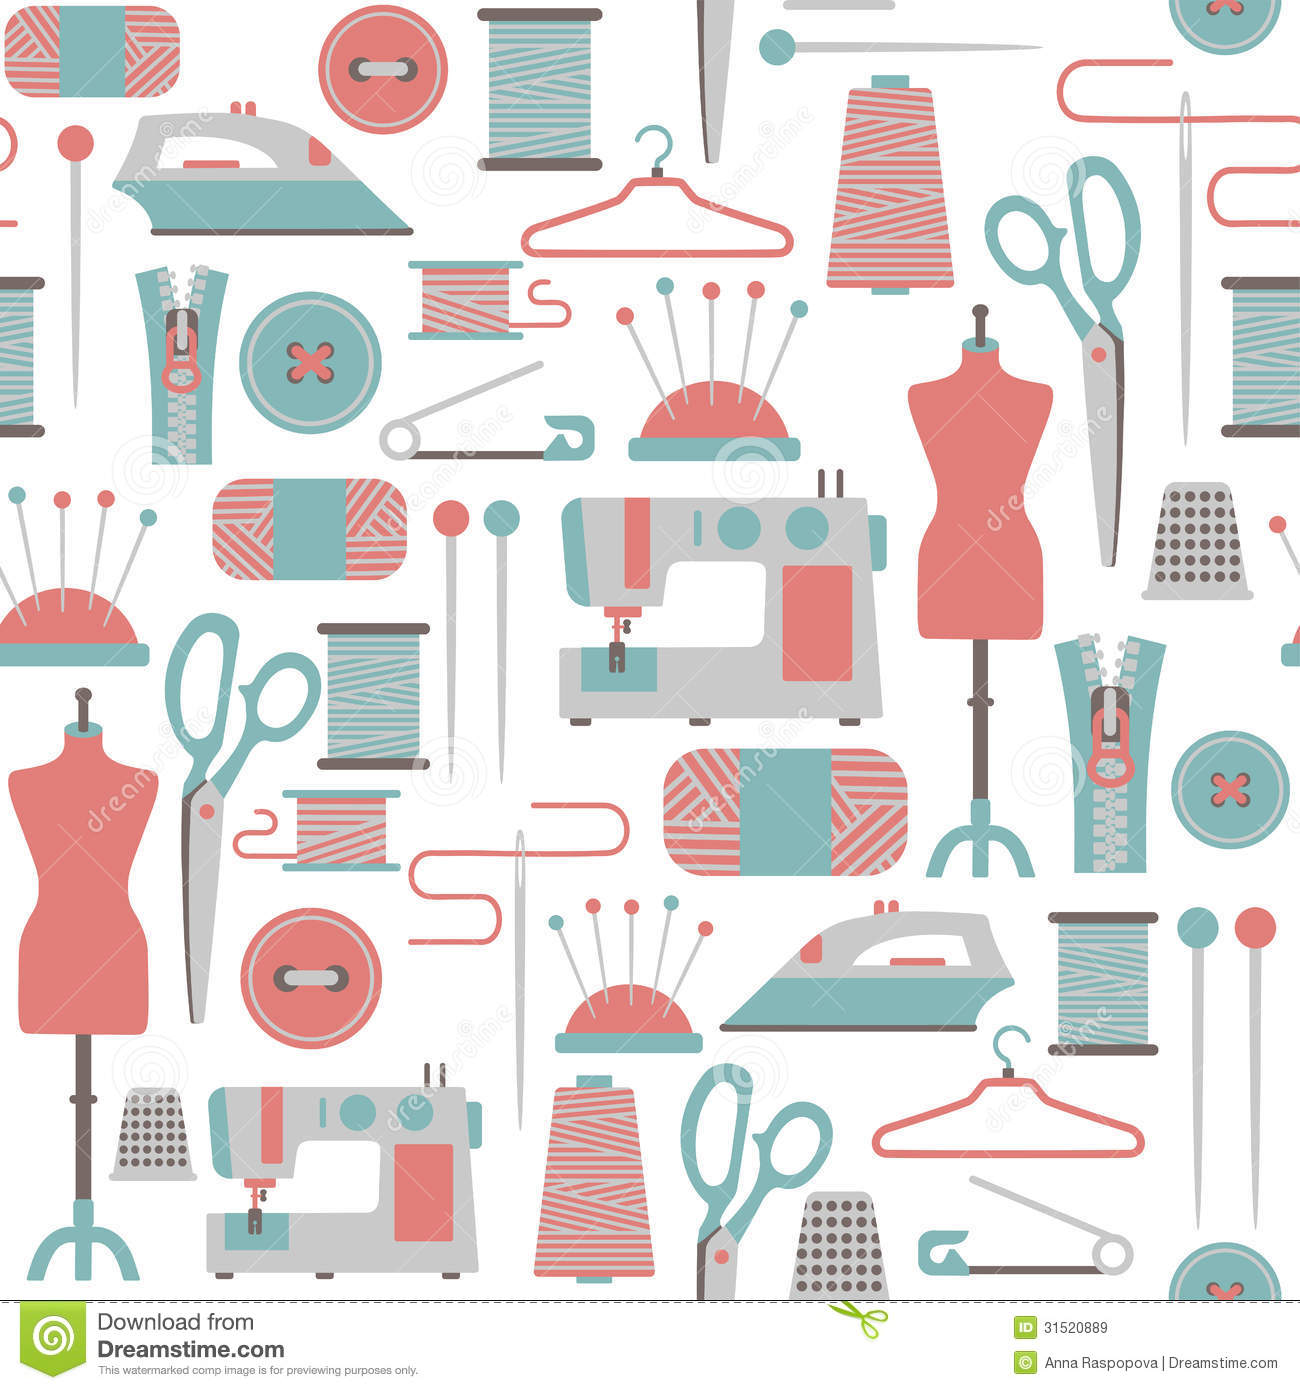 Free sewing patterns download image collections craft decoration sewing pattern royalty free stock images image 31520889 royalty free stock photo download sewing pattern jeuxipadfo jeuxipadfo Gallery